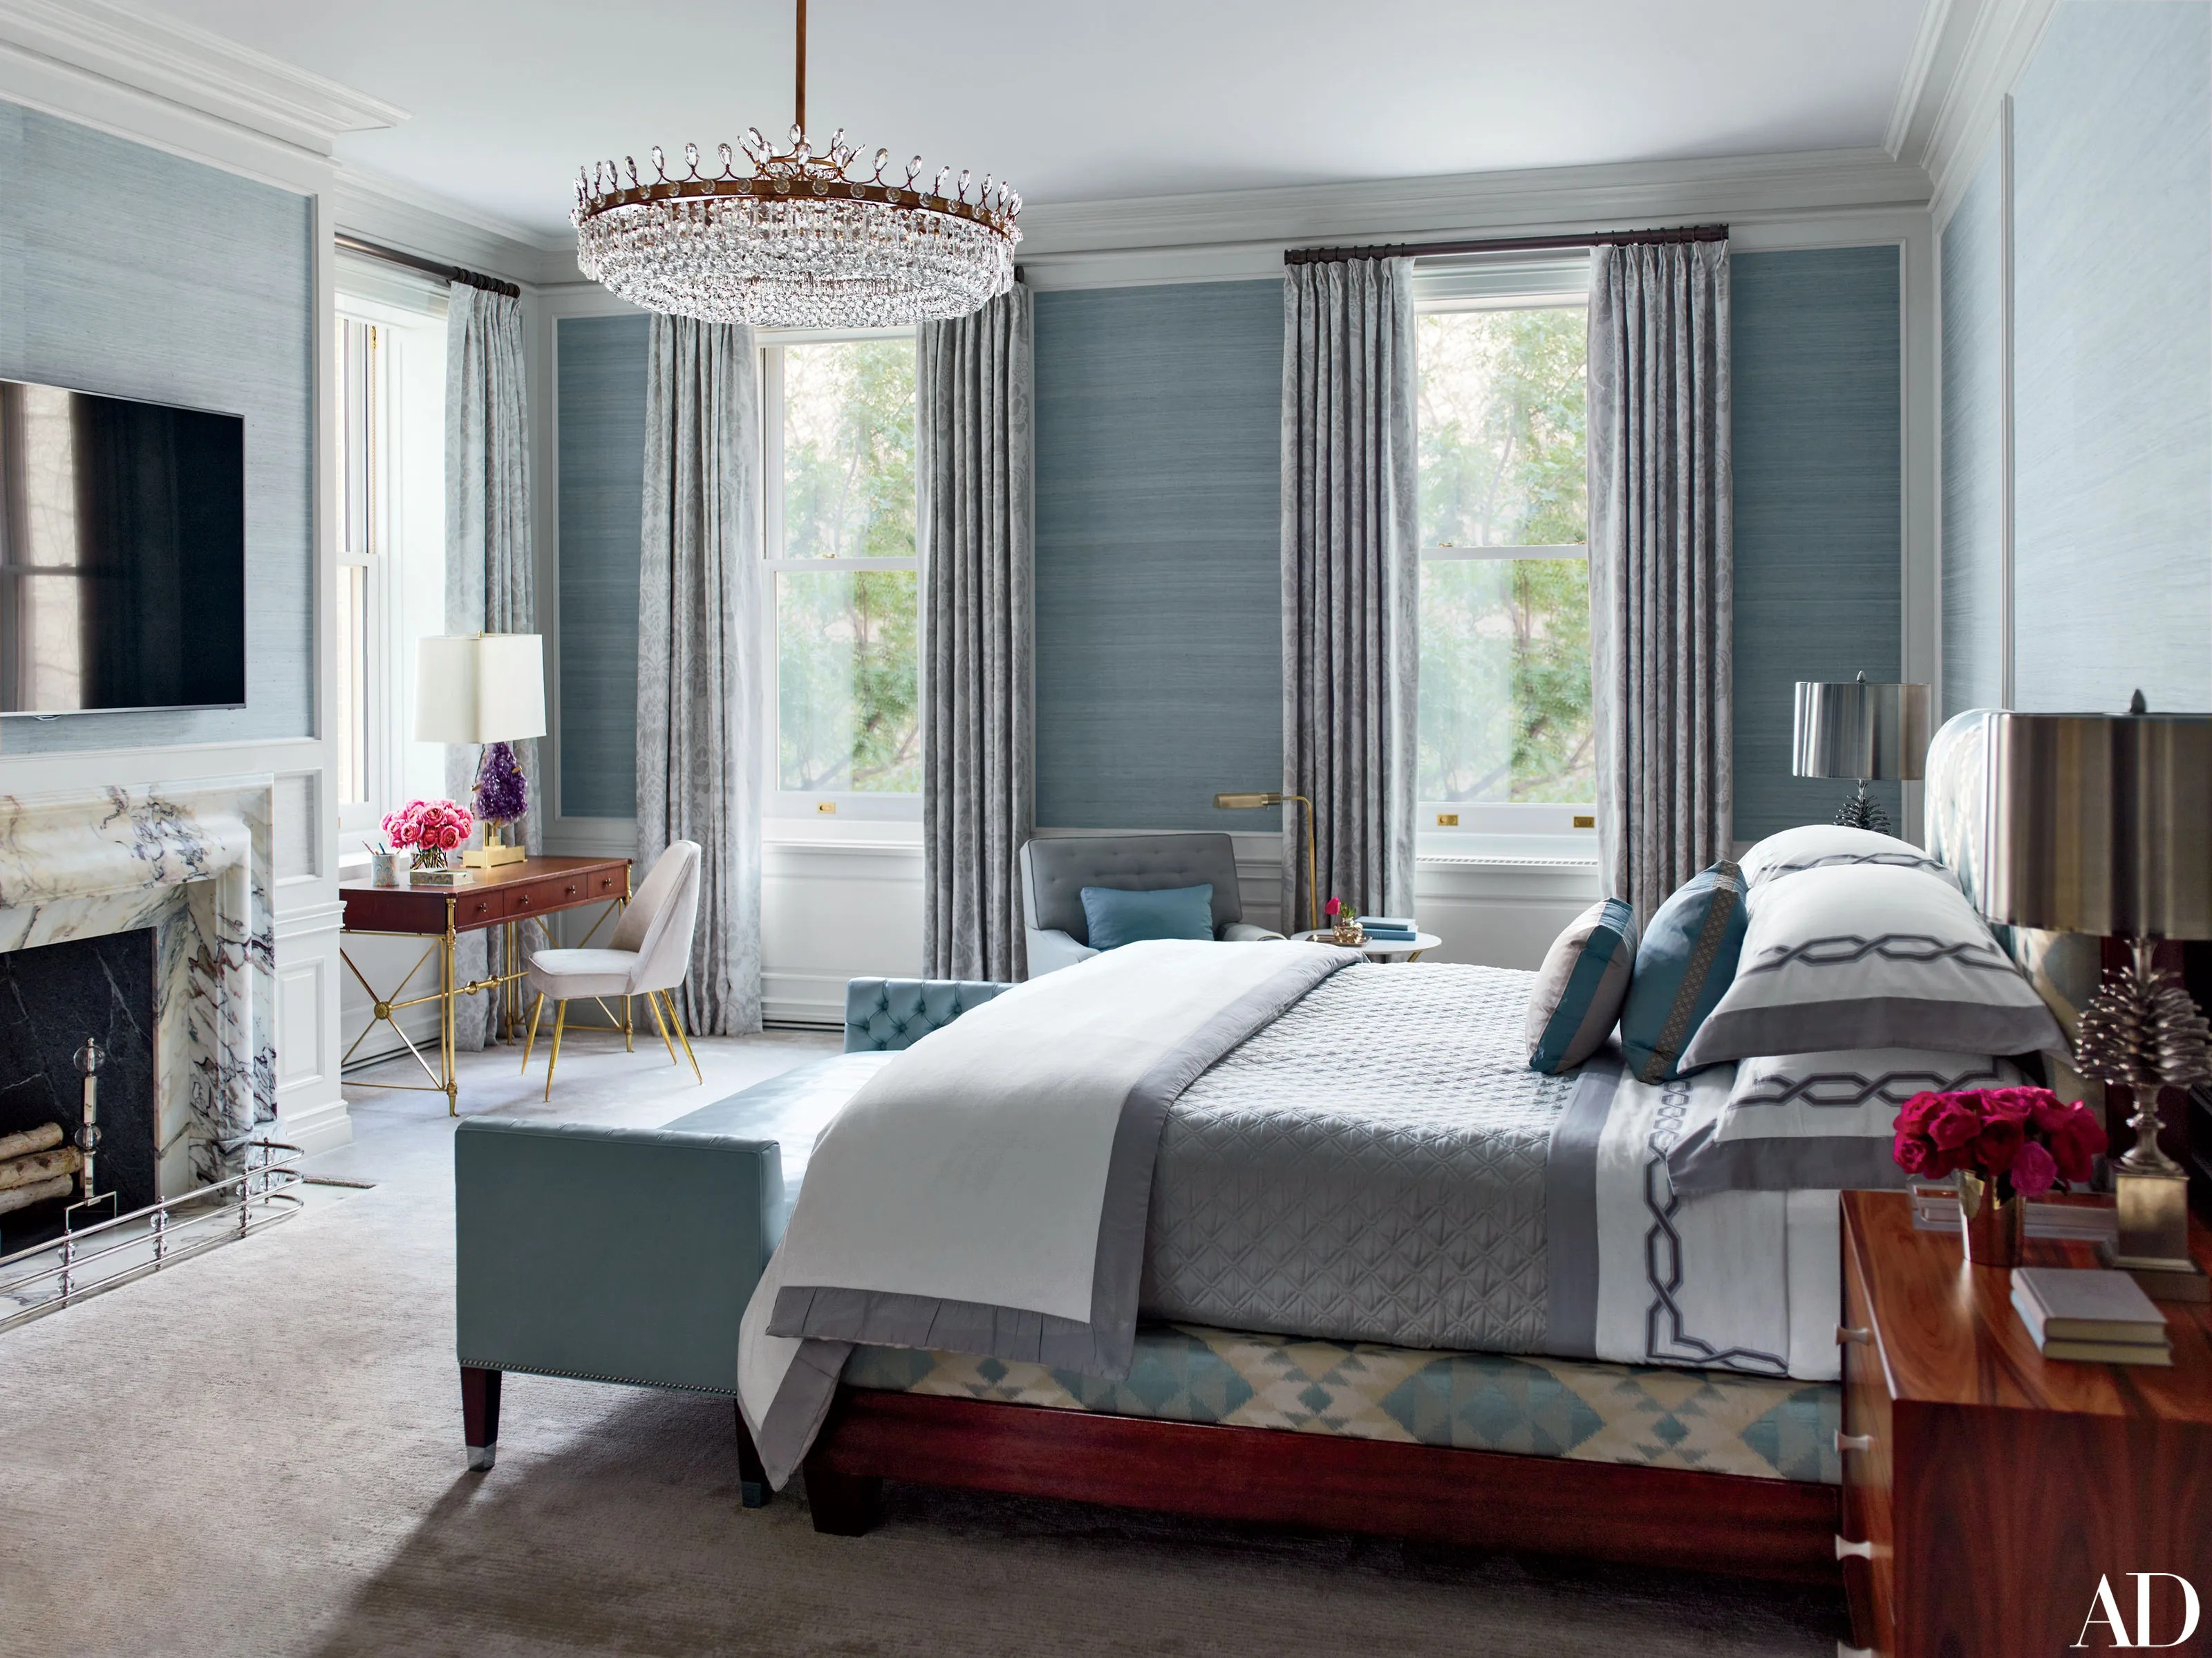 Dual Master Bedrooms Are The Hottest New Amenity In Luxury